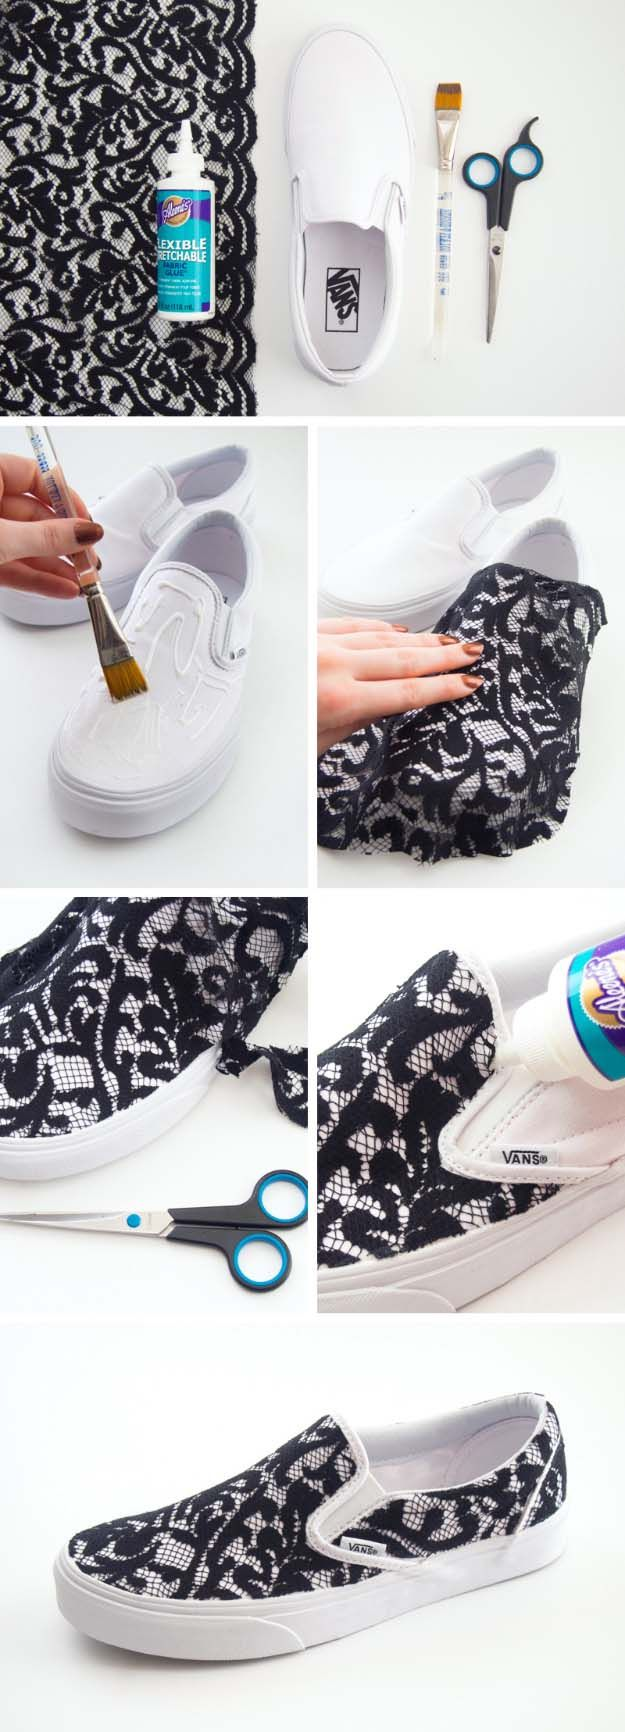 133 best teen crafts images on pinterest teen crafts diy projects cool diy fashion ideas solutioingenieria Images